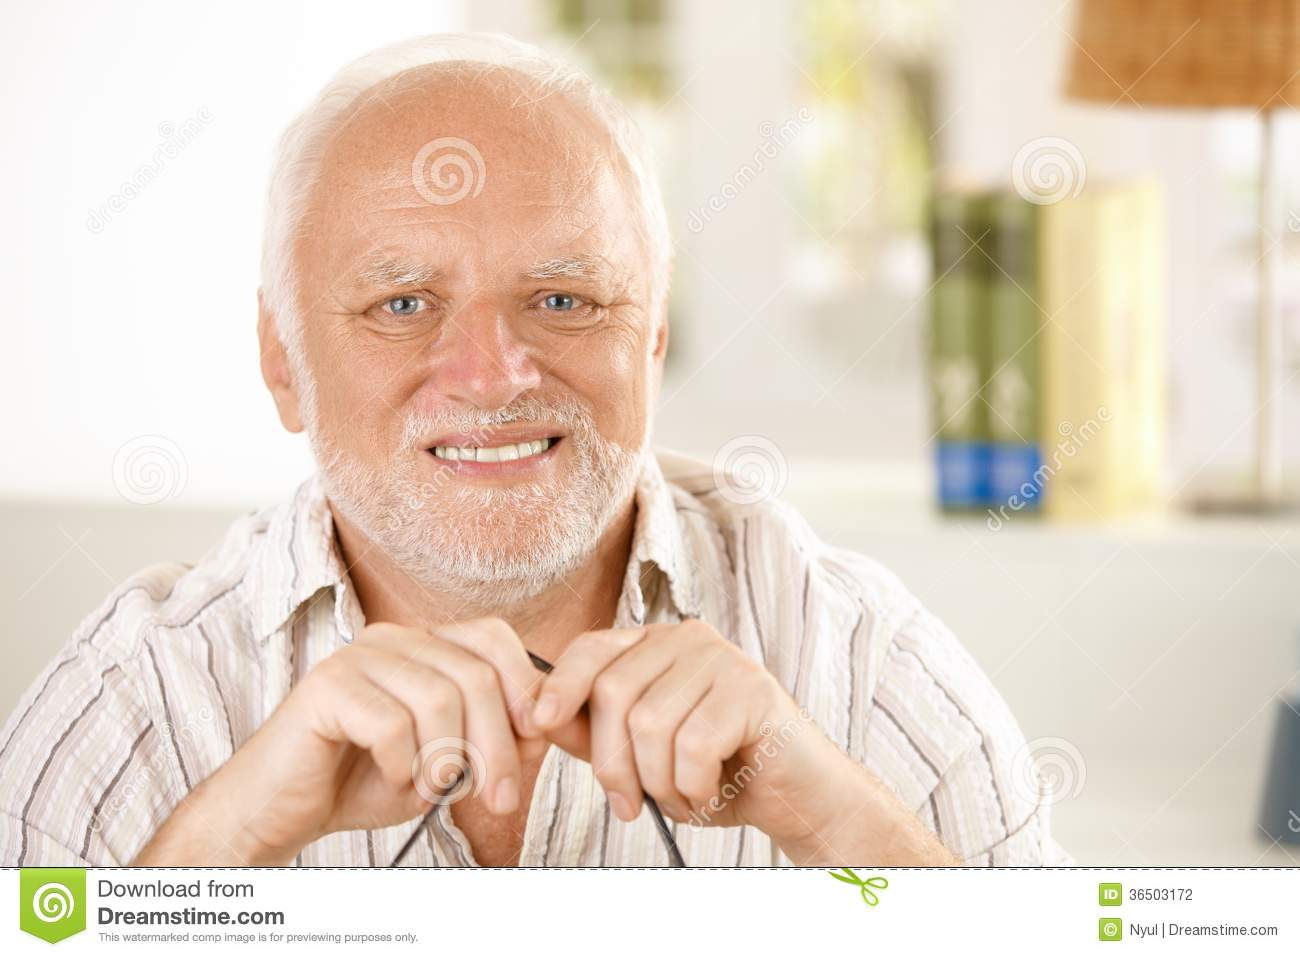 Portrait Of Happy Old Man Stock Photography - Image: 36503172